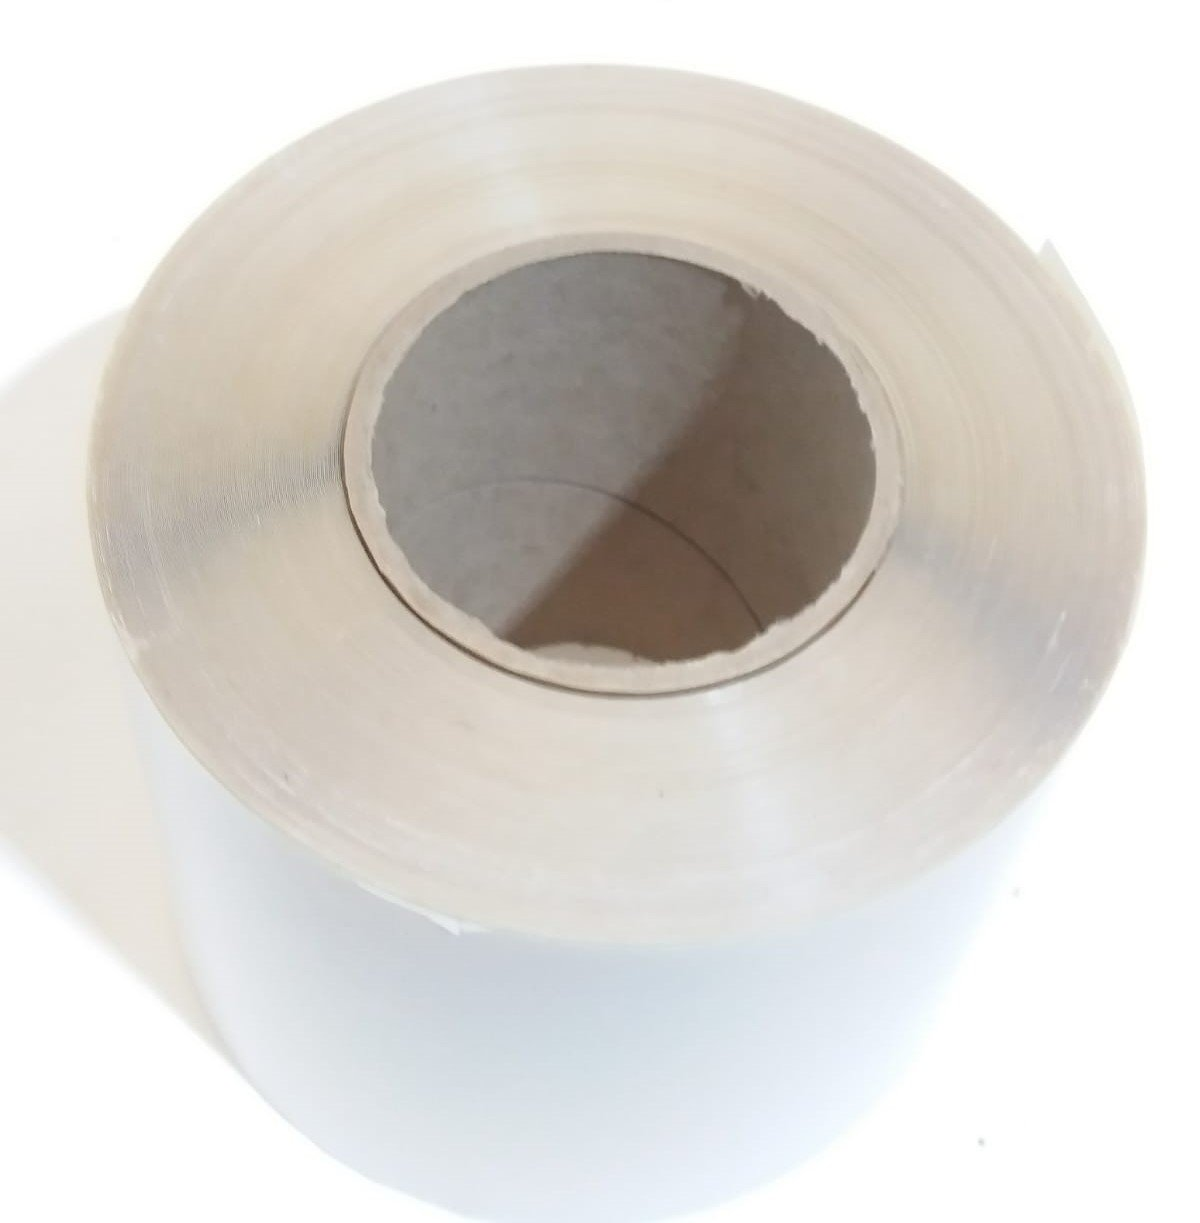 CRICKET BAT SHEET ANTI SCUFF PROTECTION SAFETY SHEETS TAPE CLEAR PLAIN